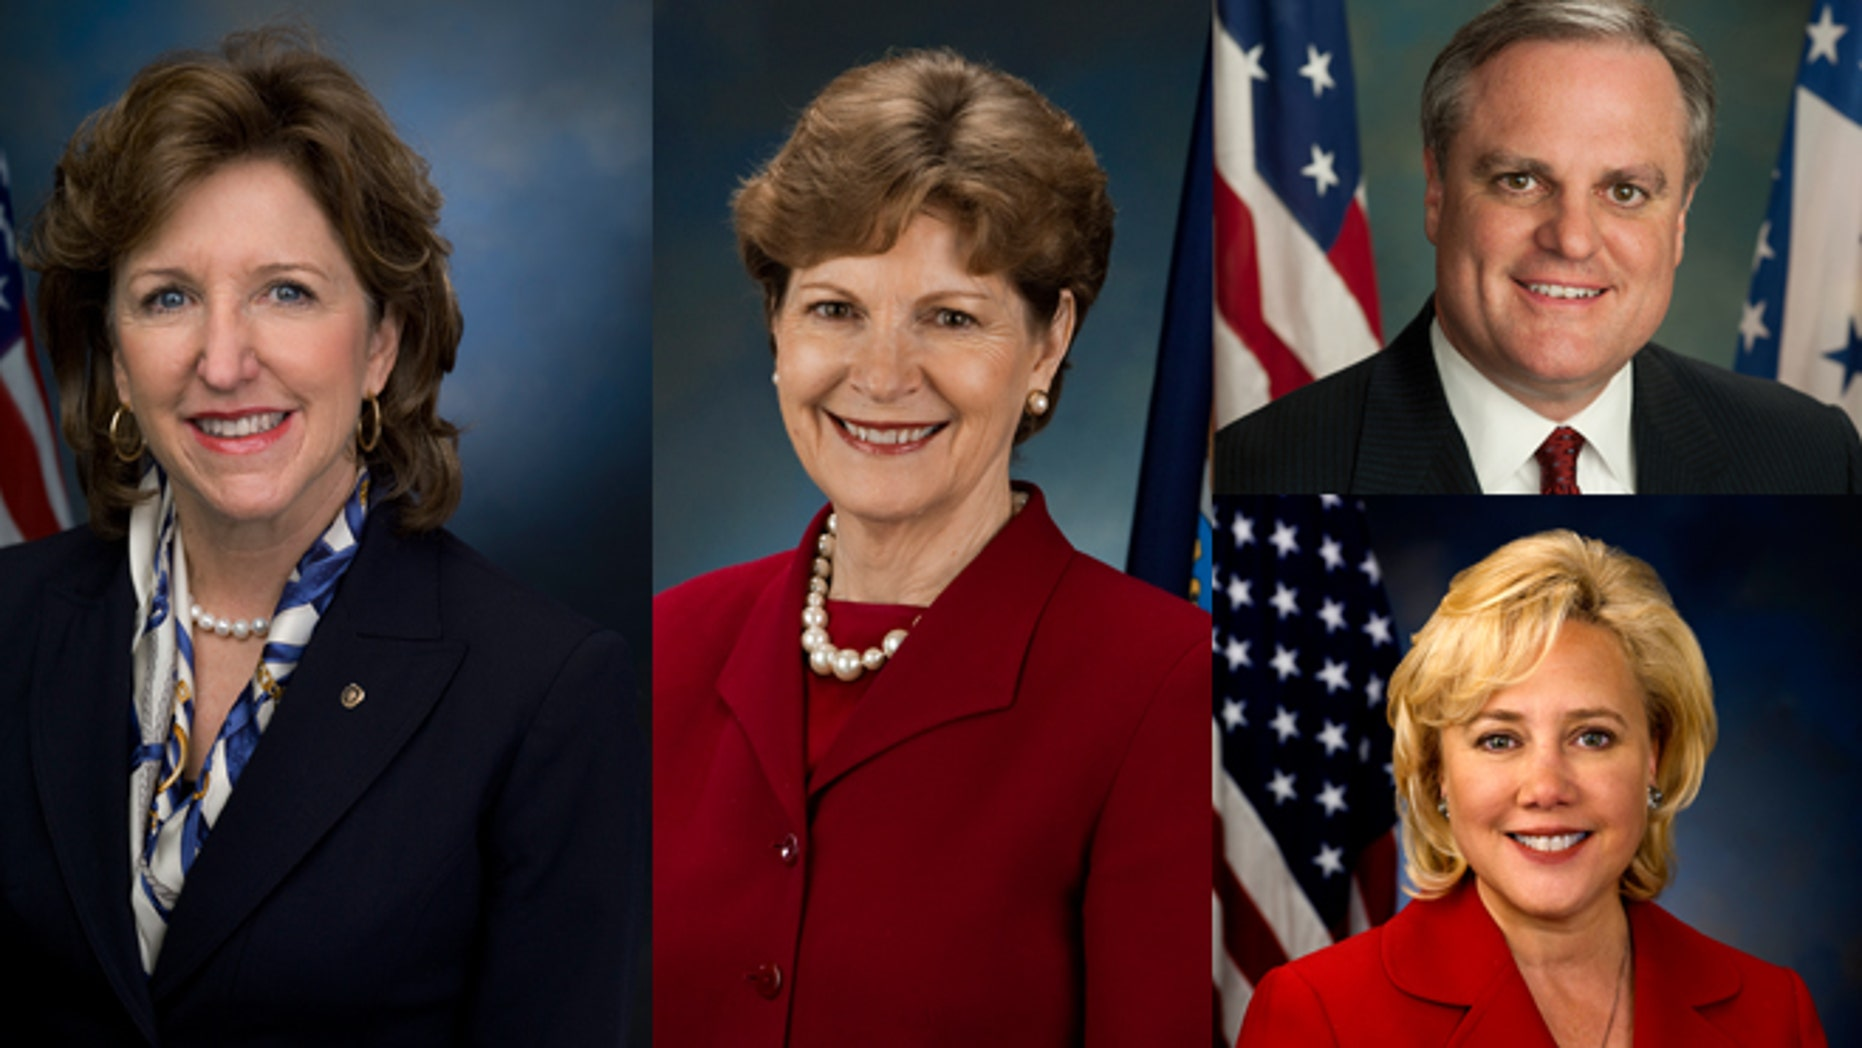 """Presente Action is specifically targeting (left to right) Sens. Kay Hagan (N.C.), Jeanne Shaheen (N.H), (top right) Mark Pryor (Ark.), and (lower right) Mary Landrieu (La.), collectively identified by the organization as the """"Dirty Four."""""""